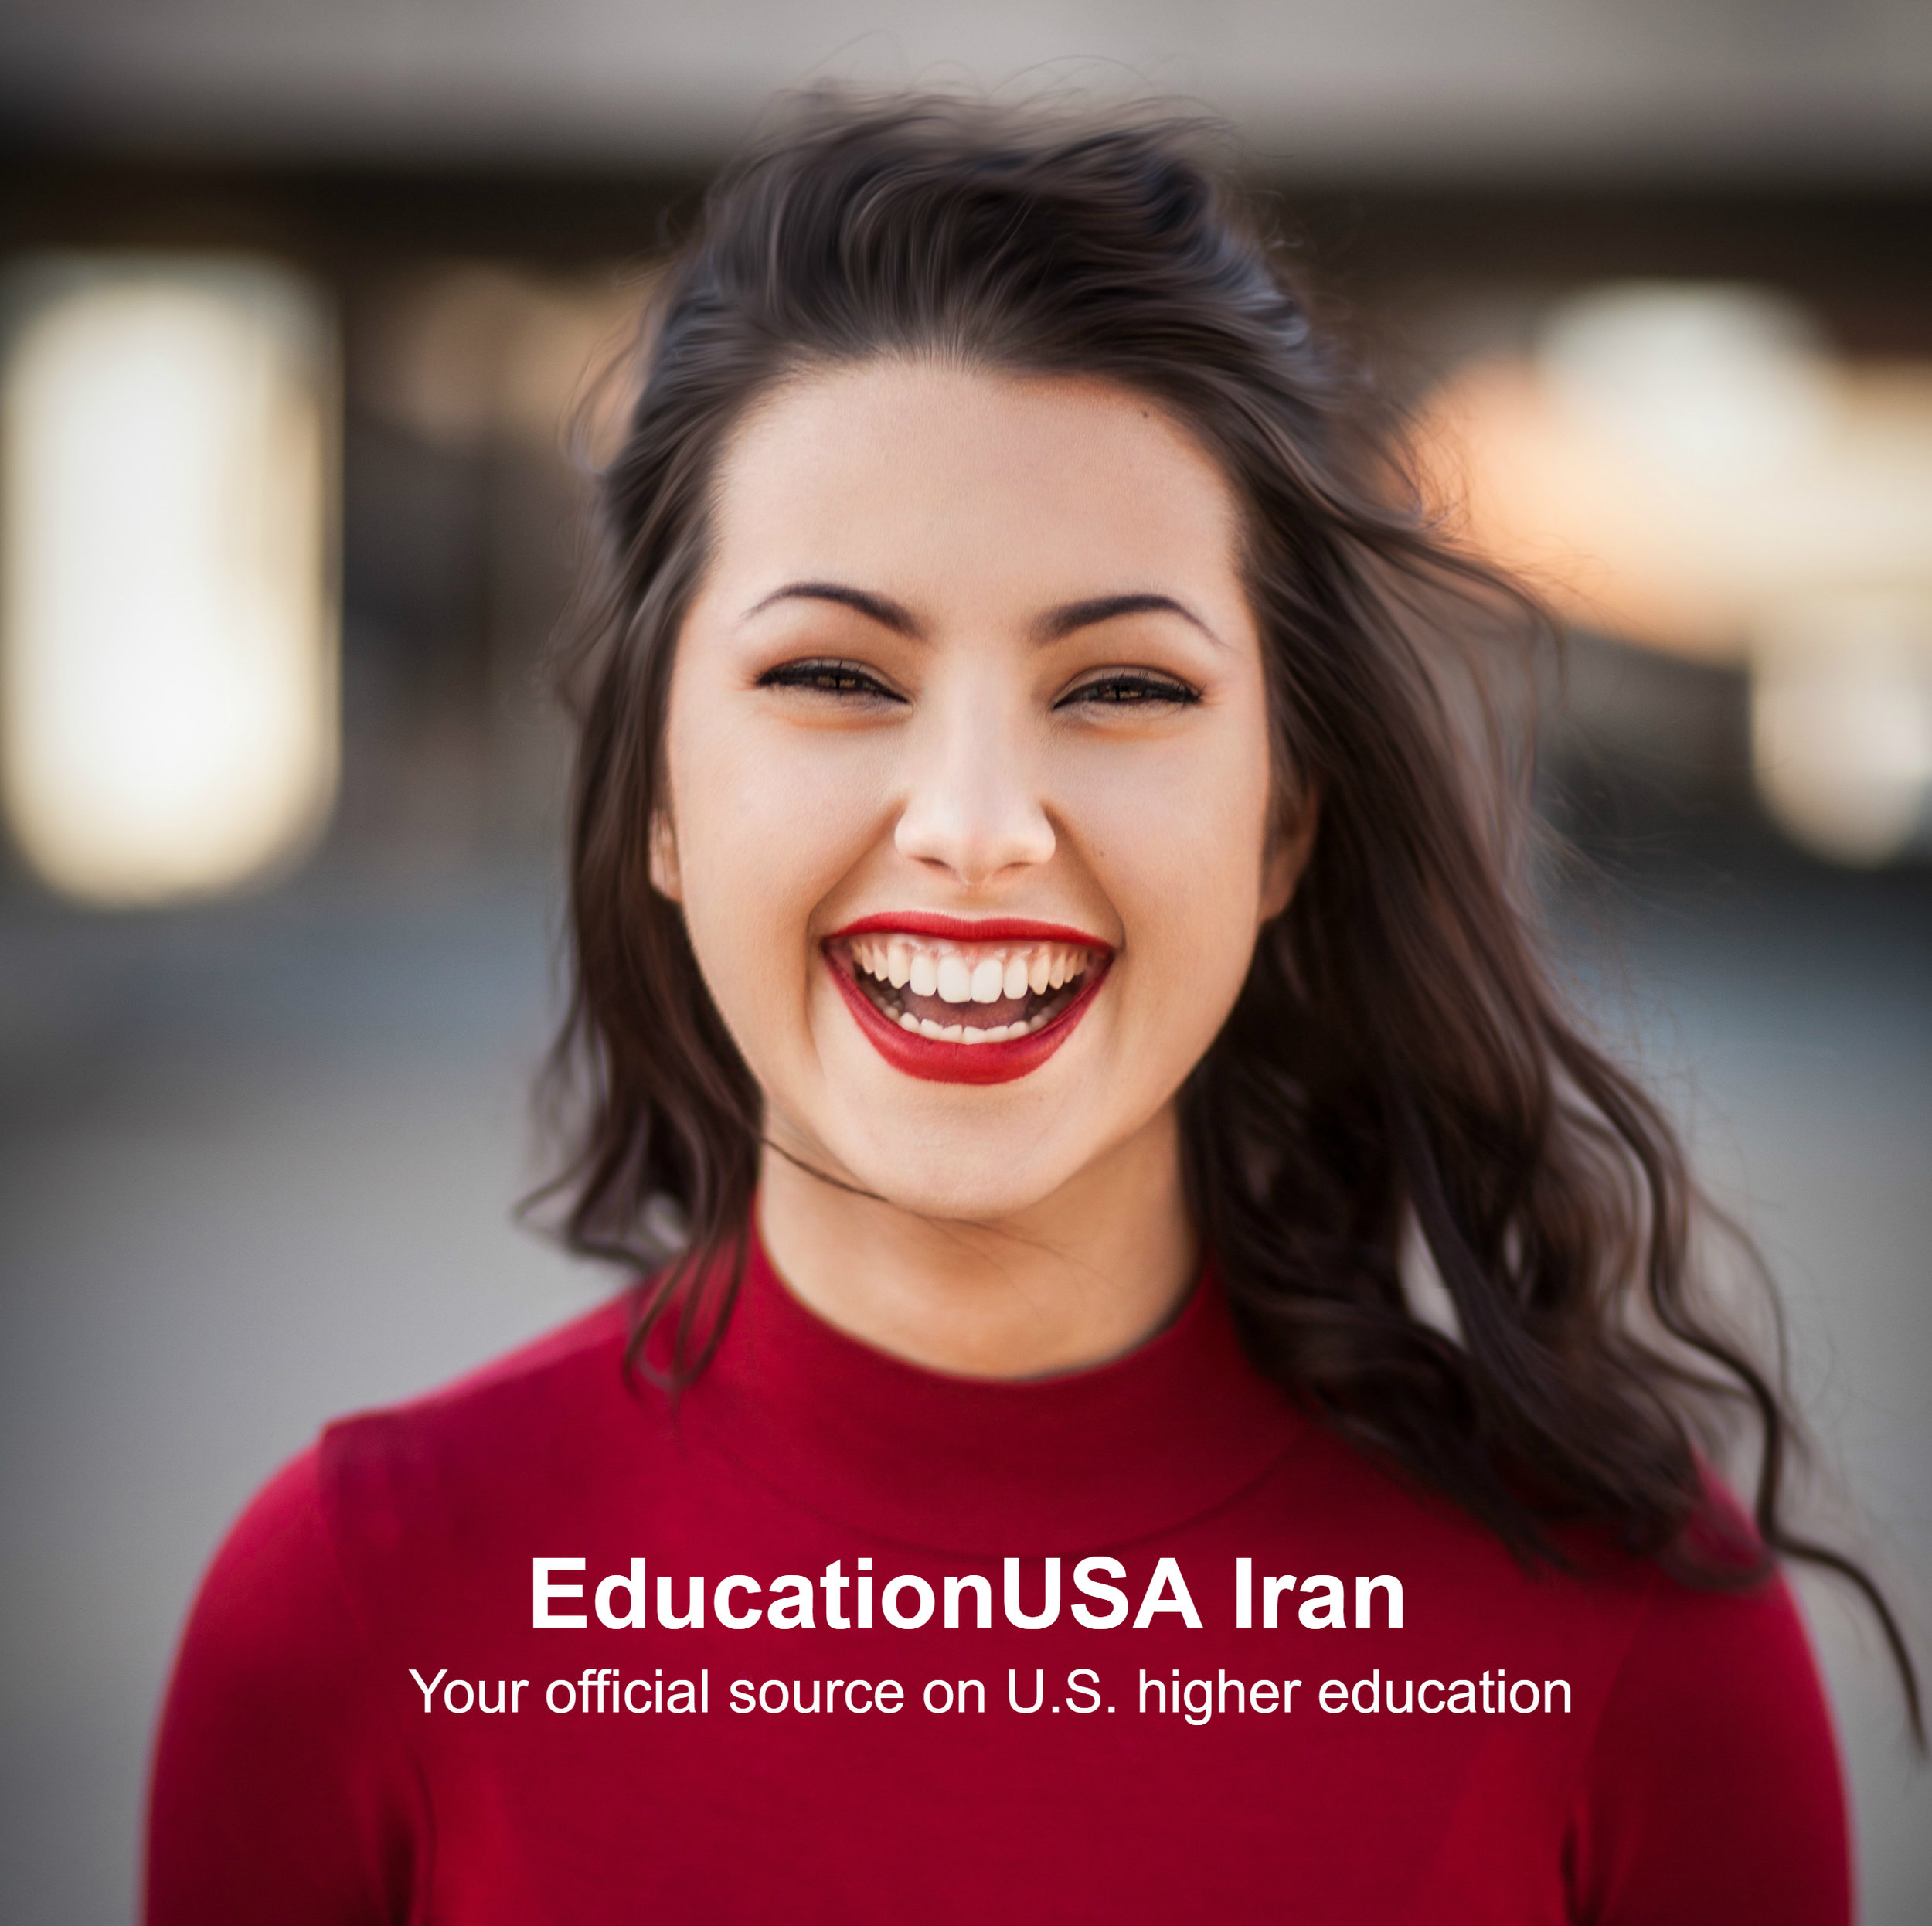 EducationUSA Iran - Your Official Source on U.S. Higher Education.